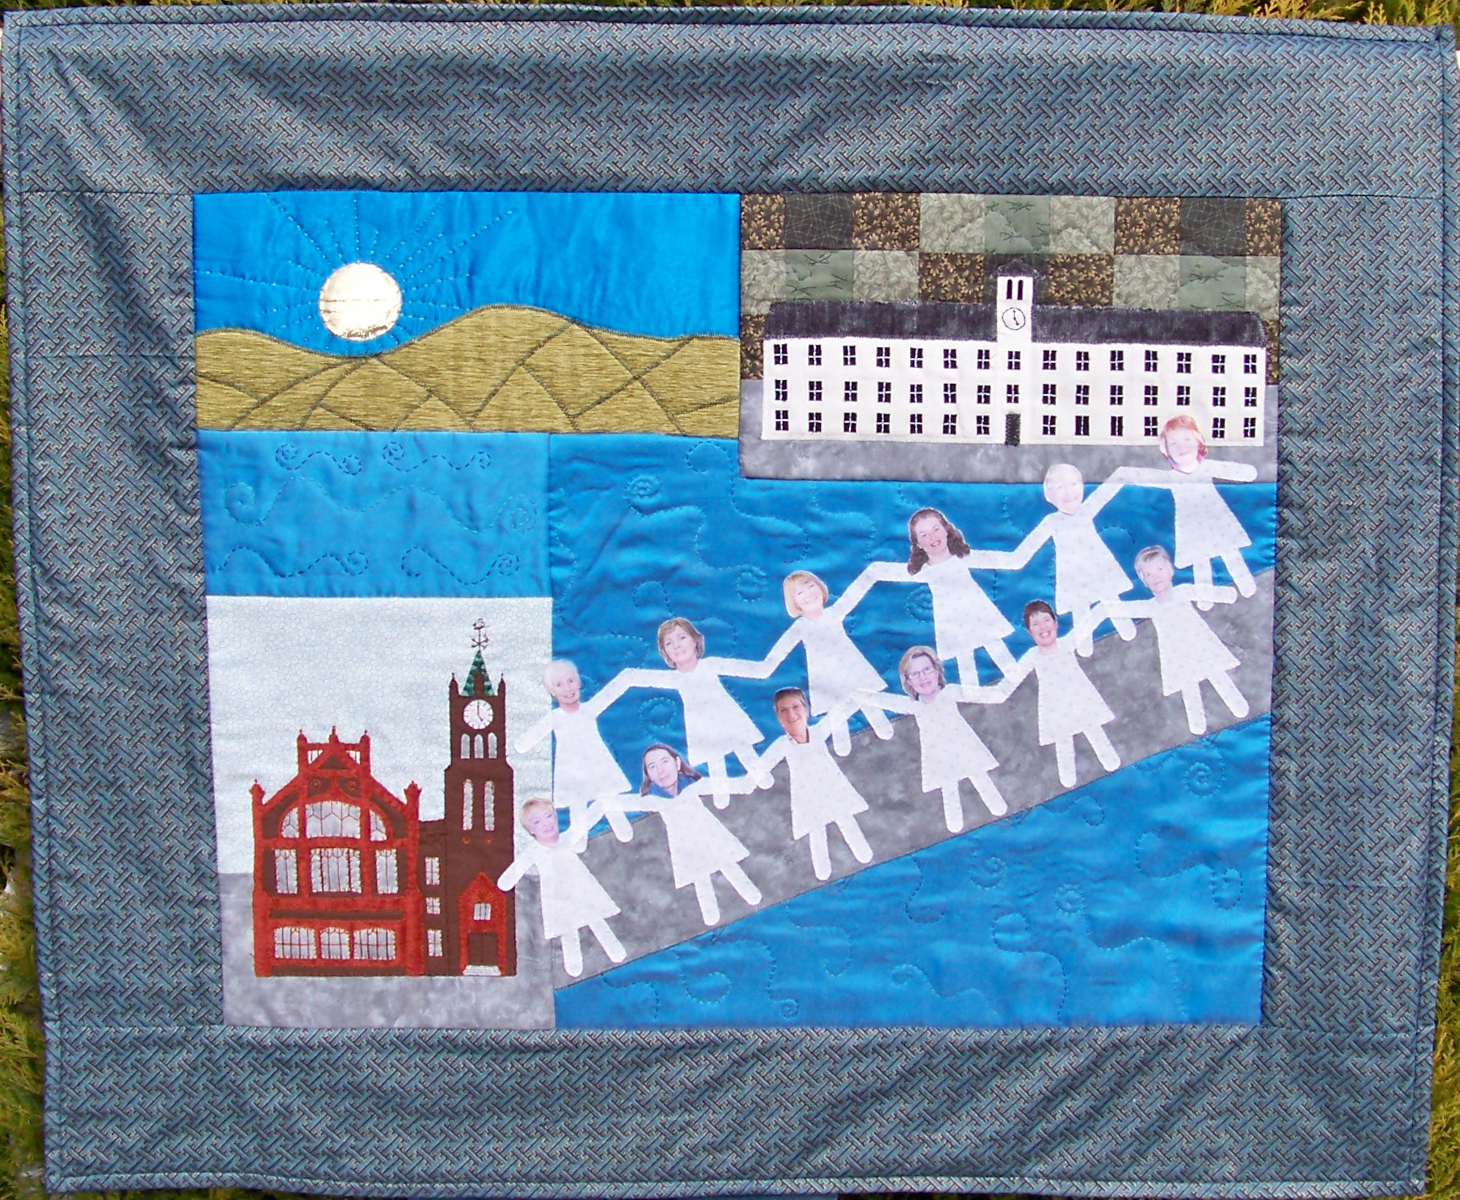 Kennedy's quilt The Lady Bridge is currently on display at Derry's City of Culture officies in Northern Ireland.